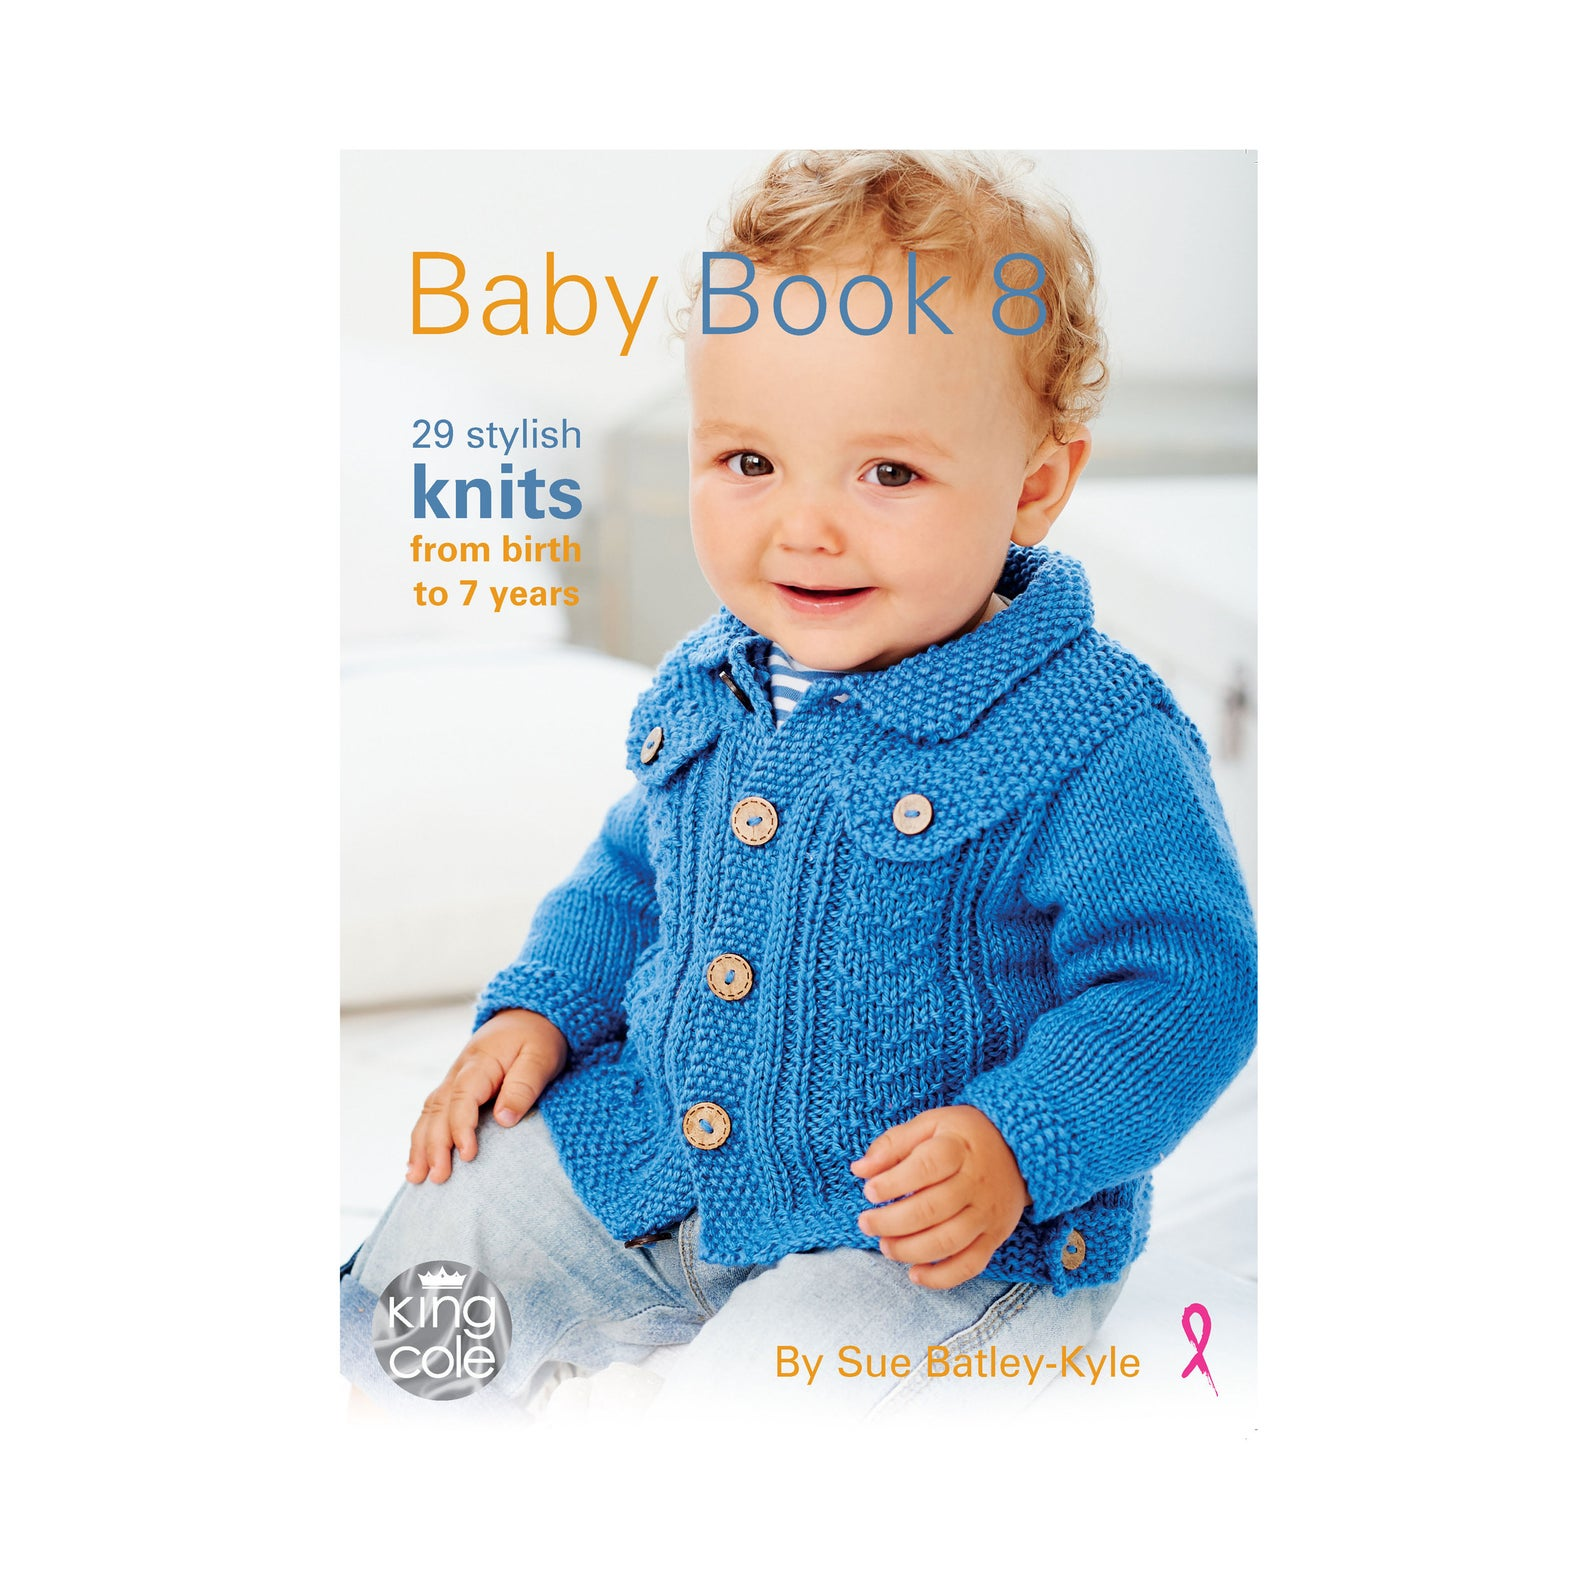 King Cole Pattern Book 8